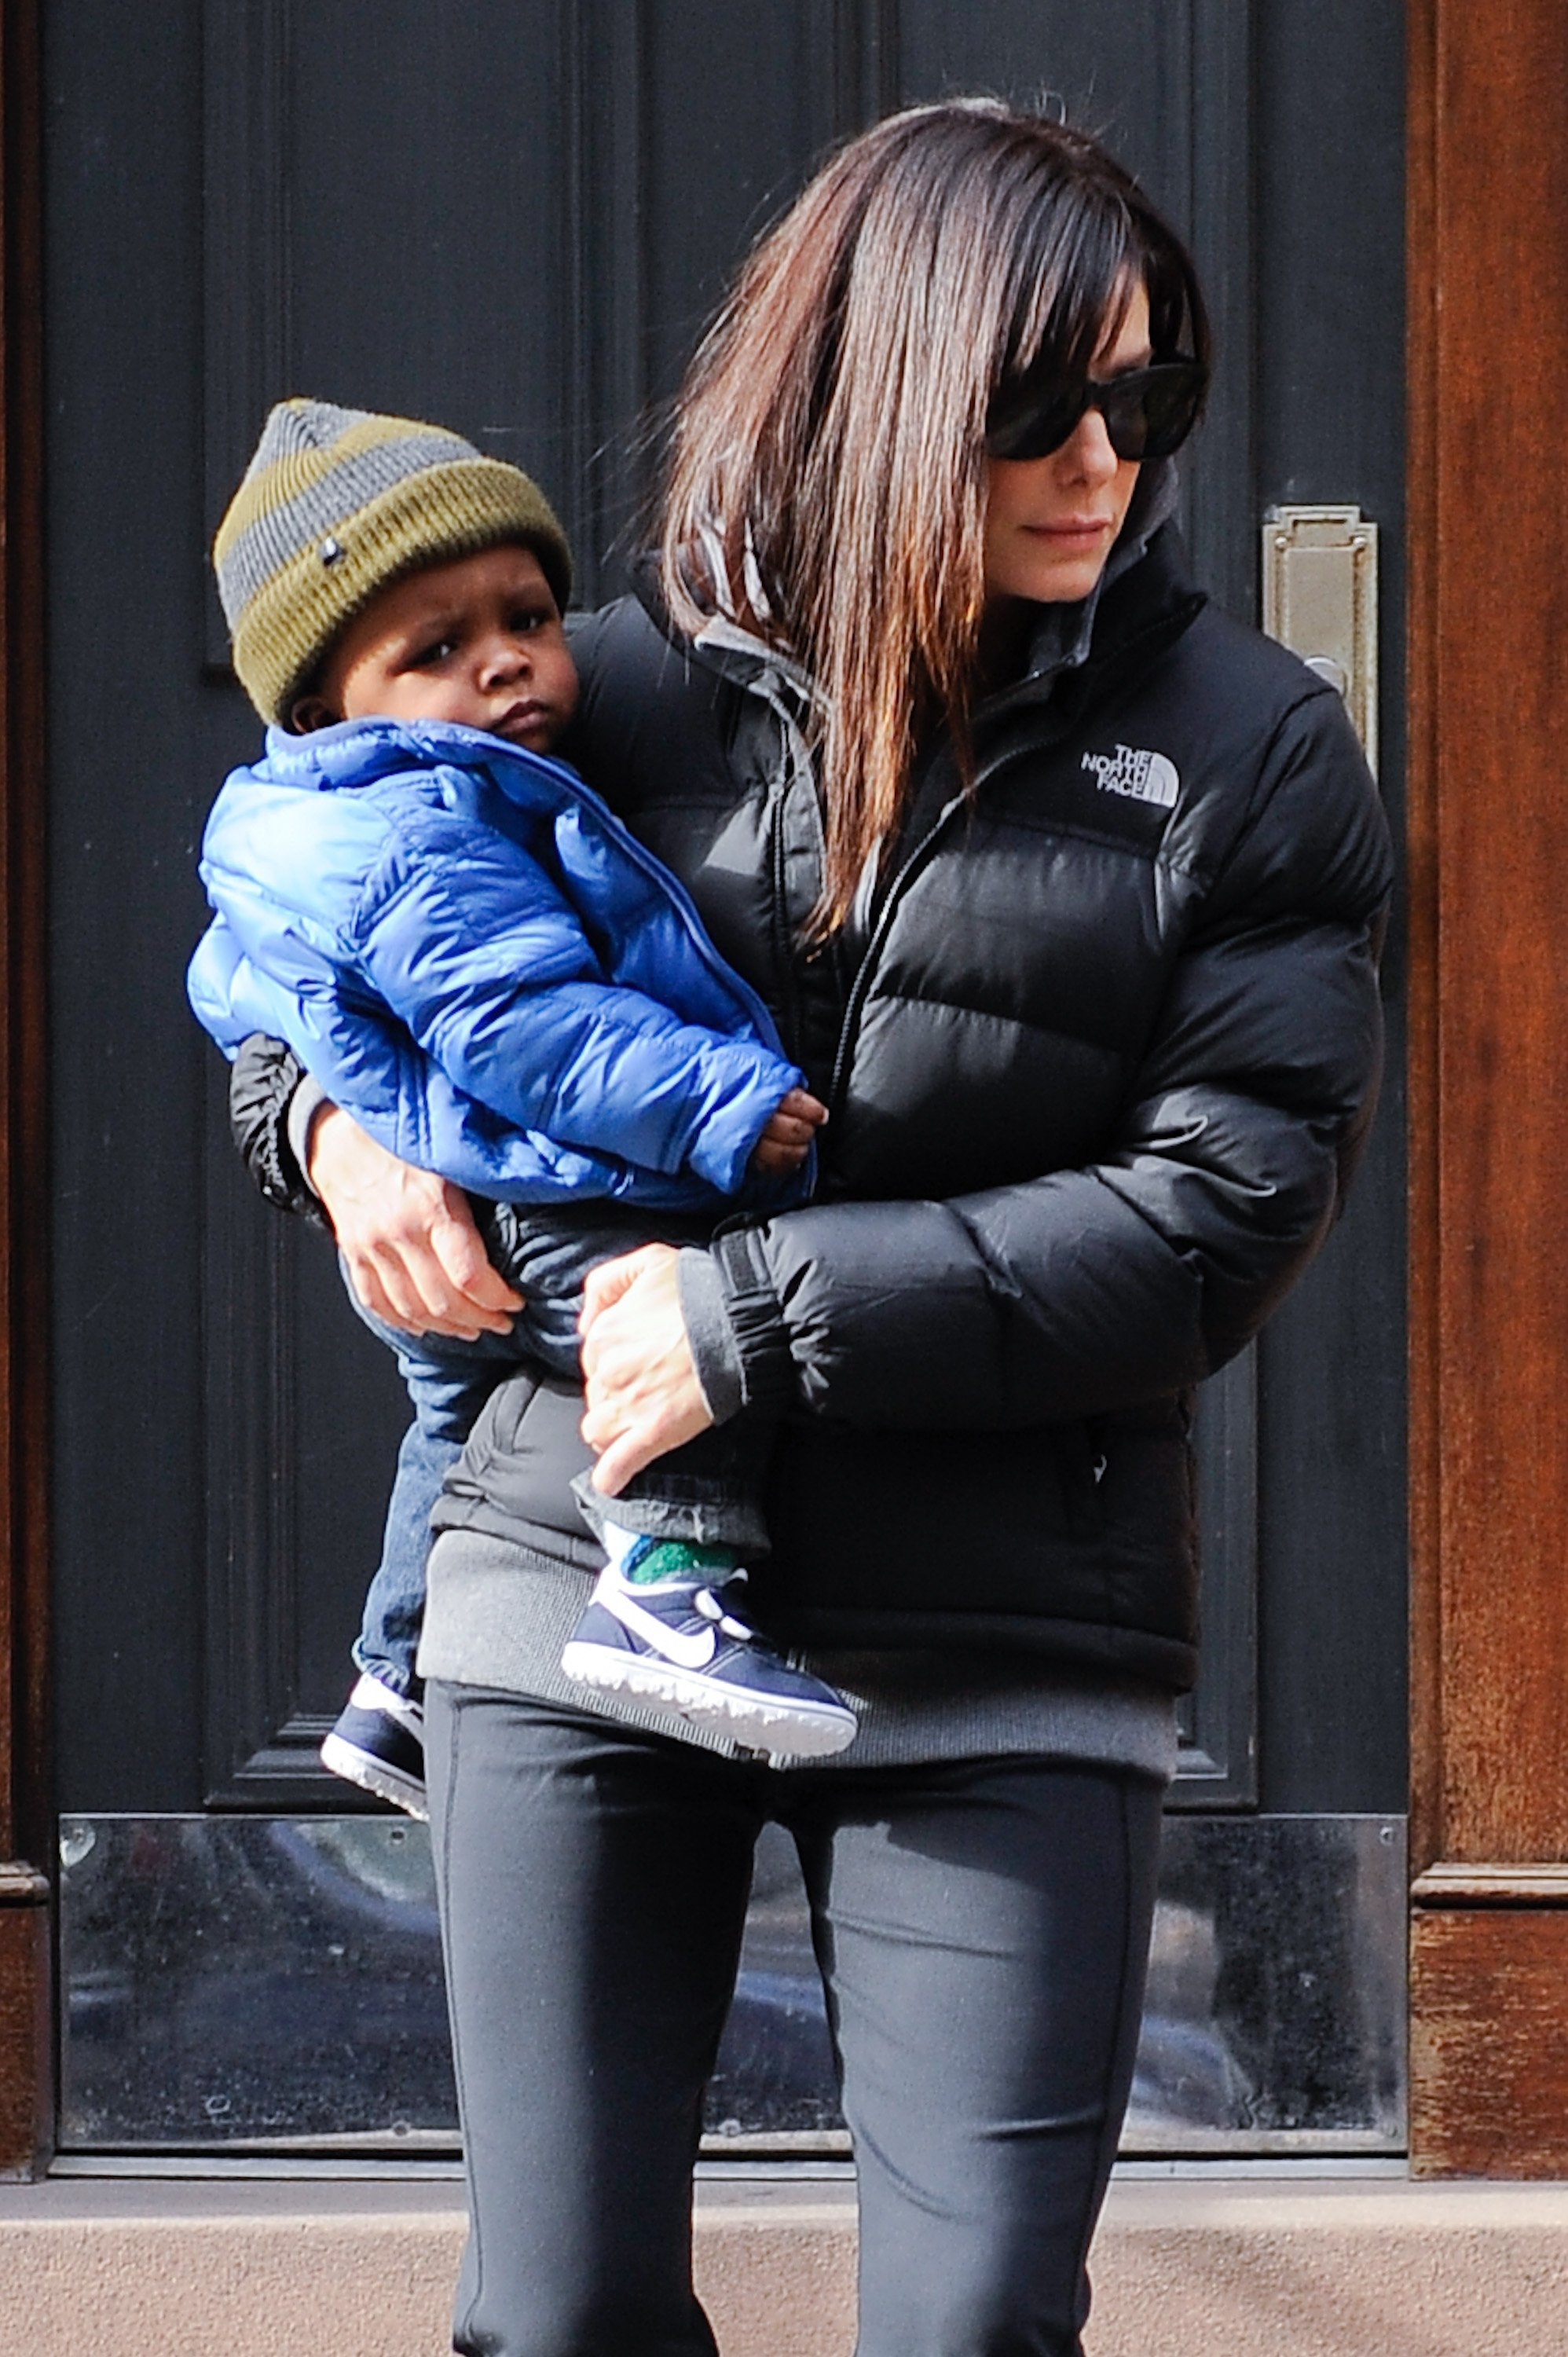 Sandra Bullock und ihr Sohn Louis Bullock, New York City, 2011 | Quelle: Getty Images